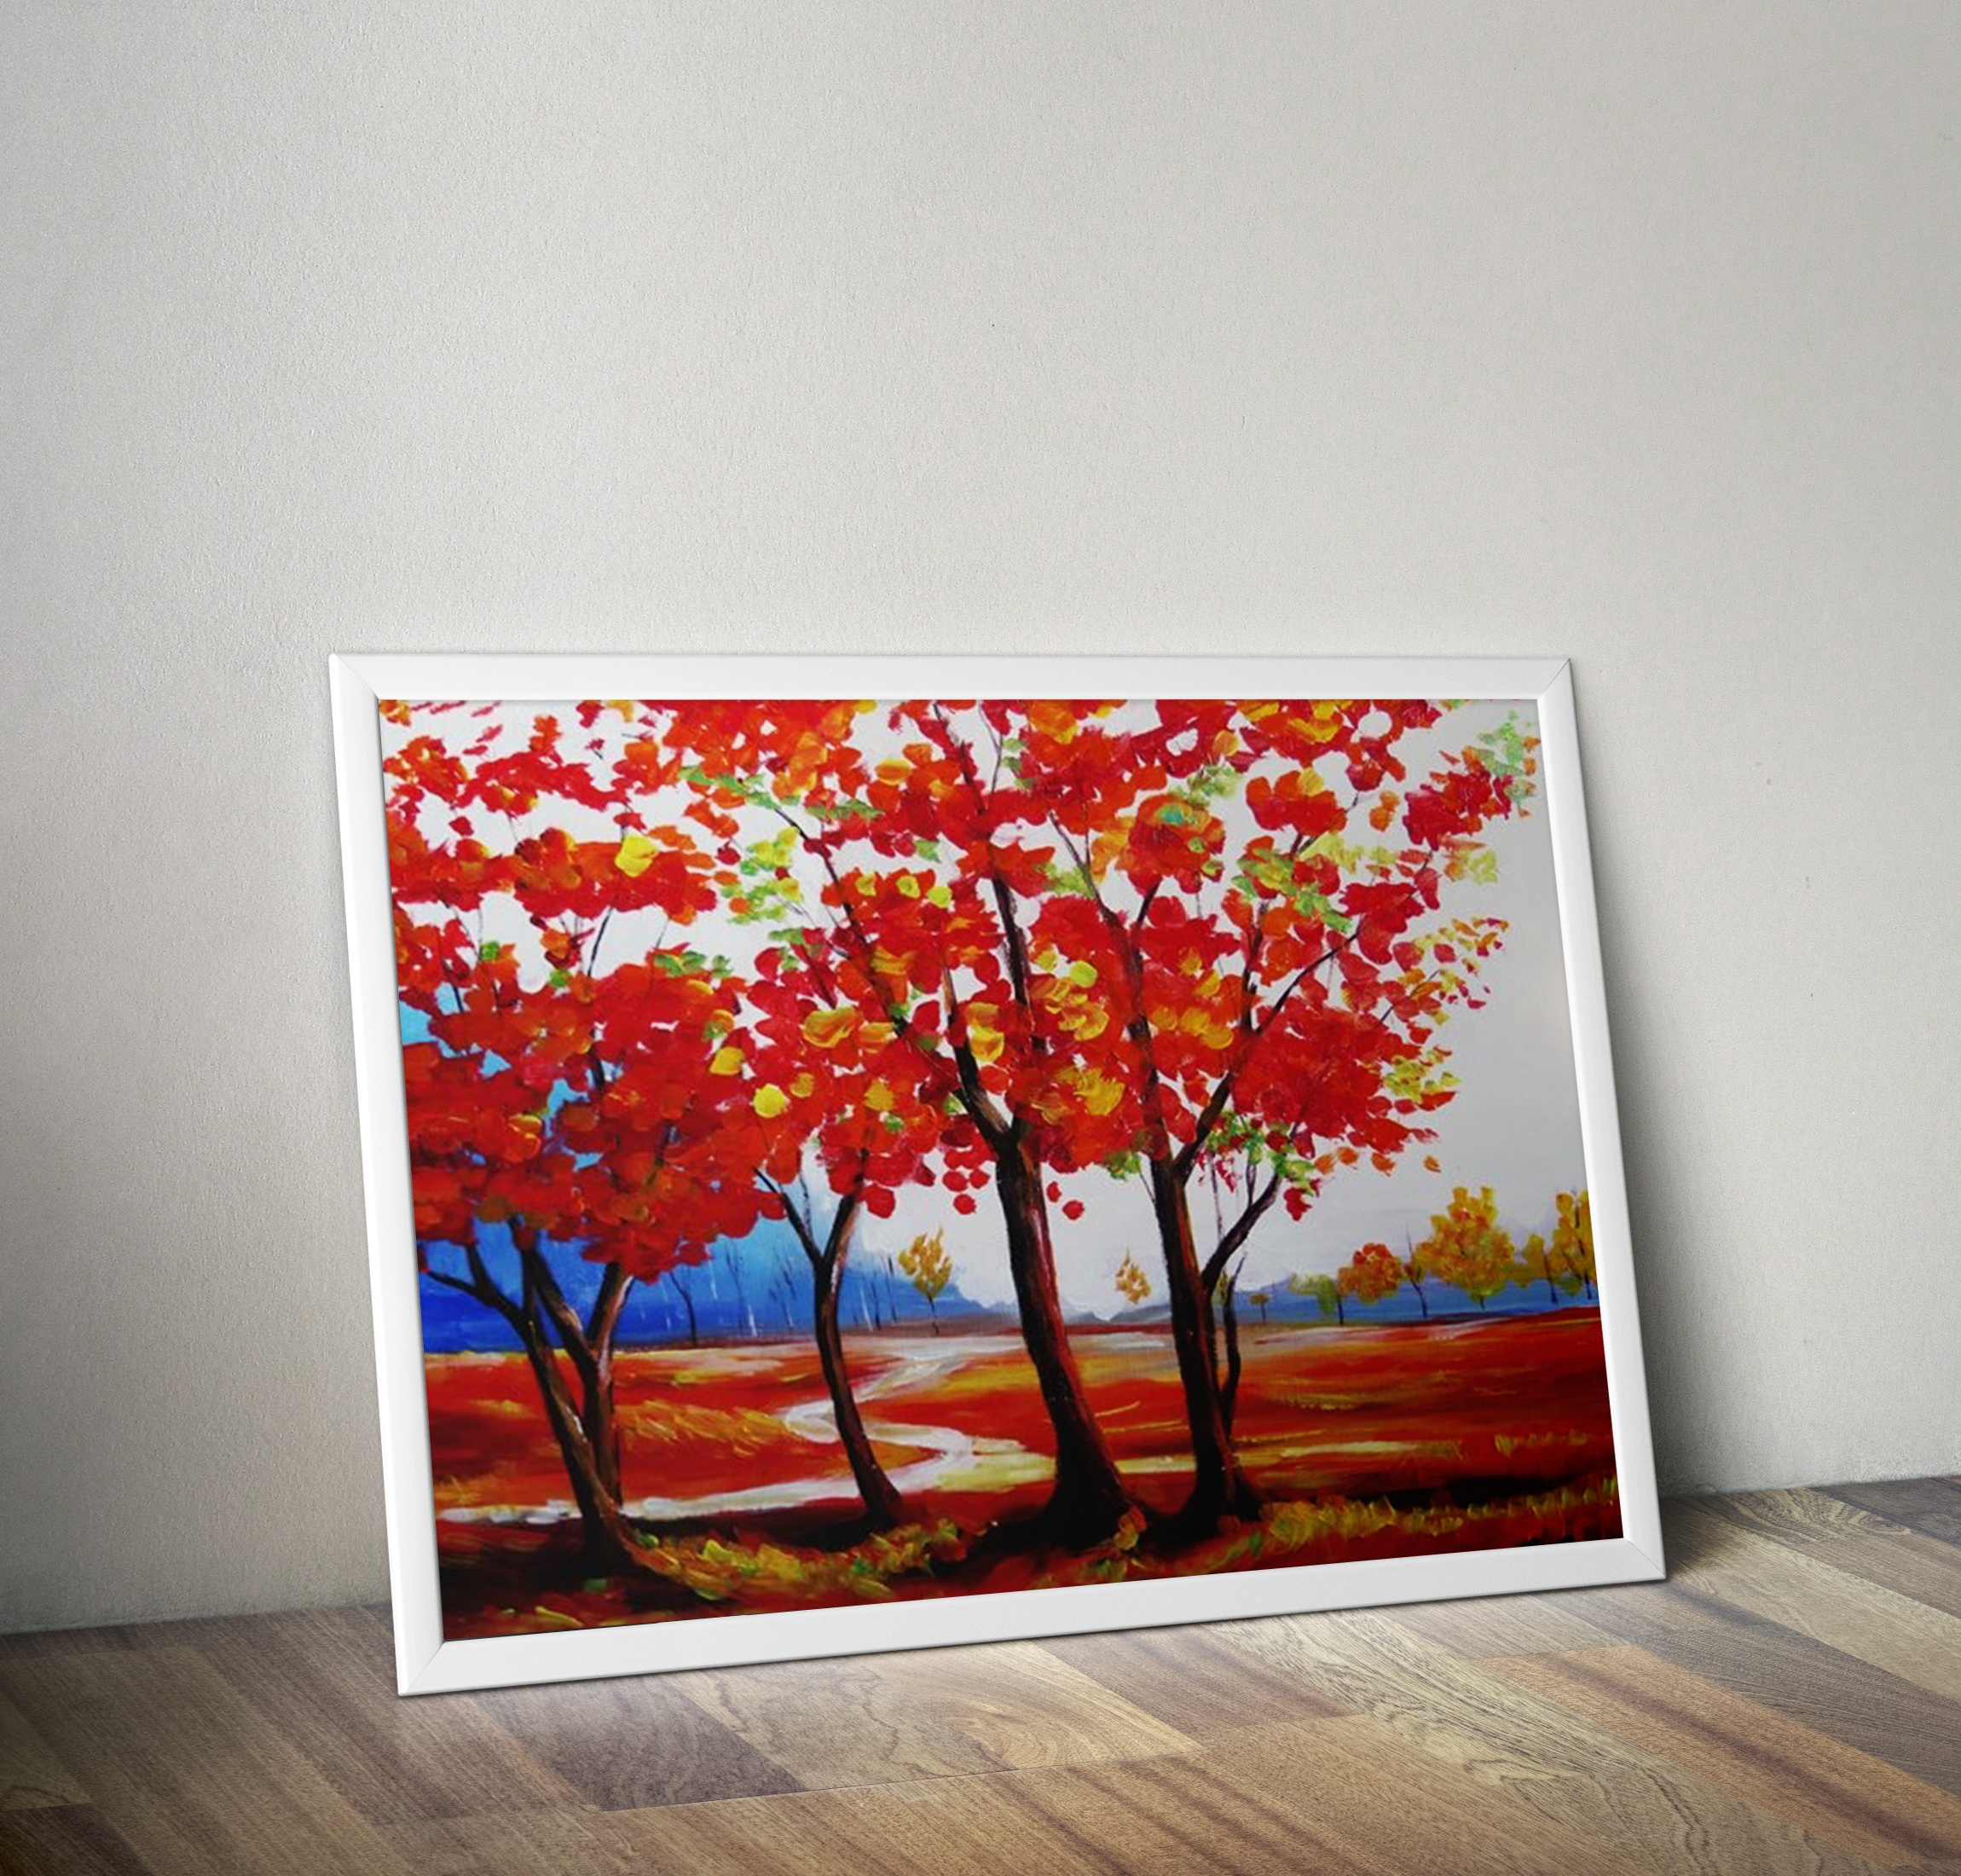 We paint - Autumn_19_AUGUST.jpg